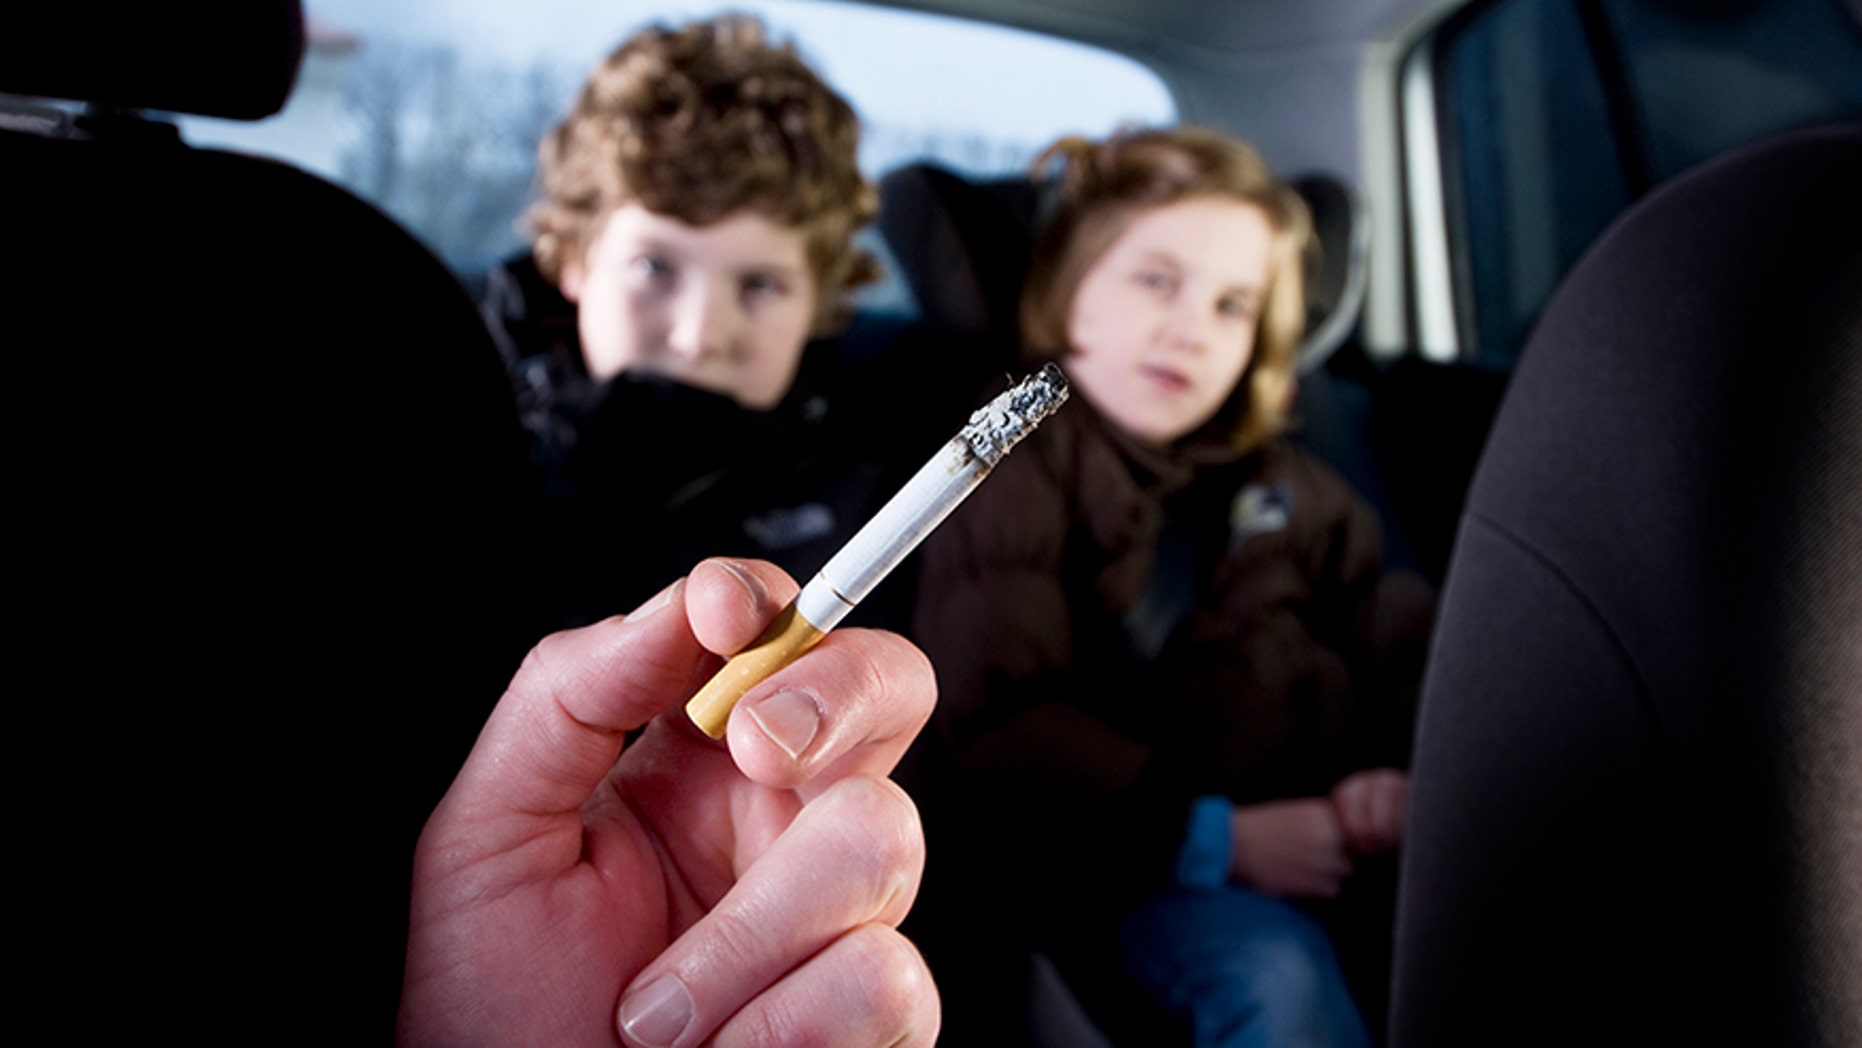 Two young children being subjected to the effects of passive smoking from their mother's cigarette.